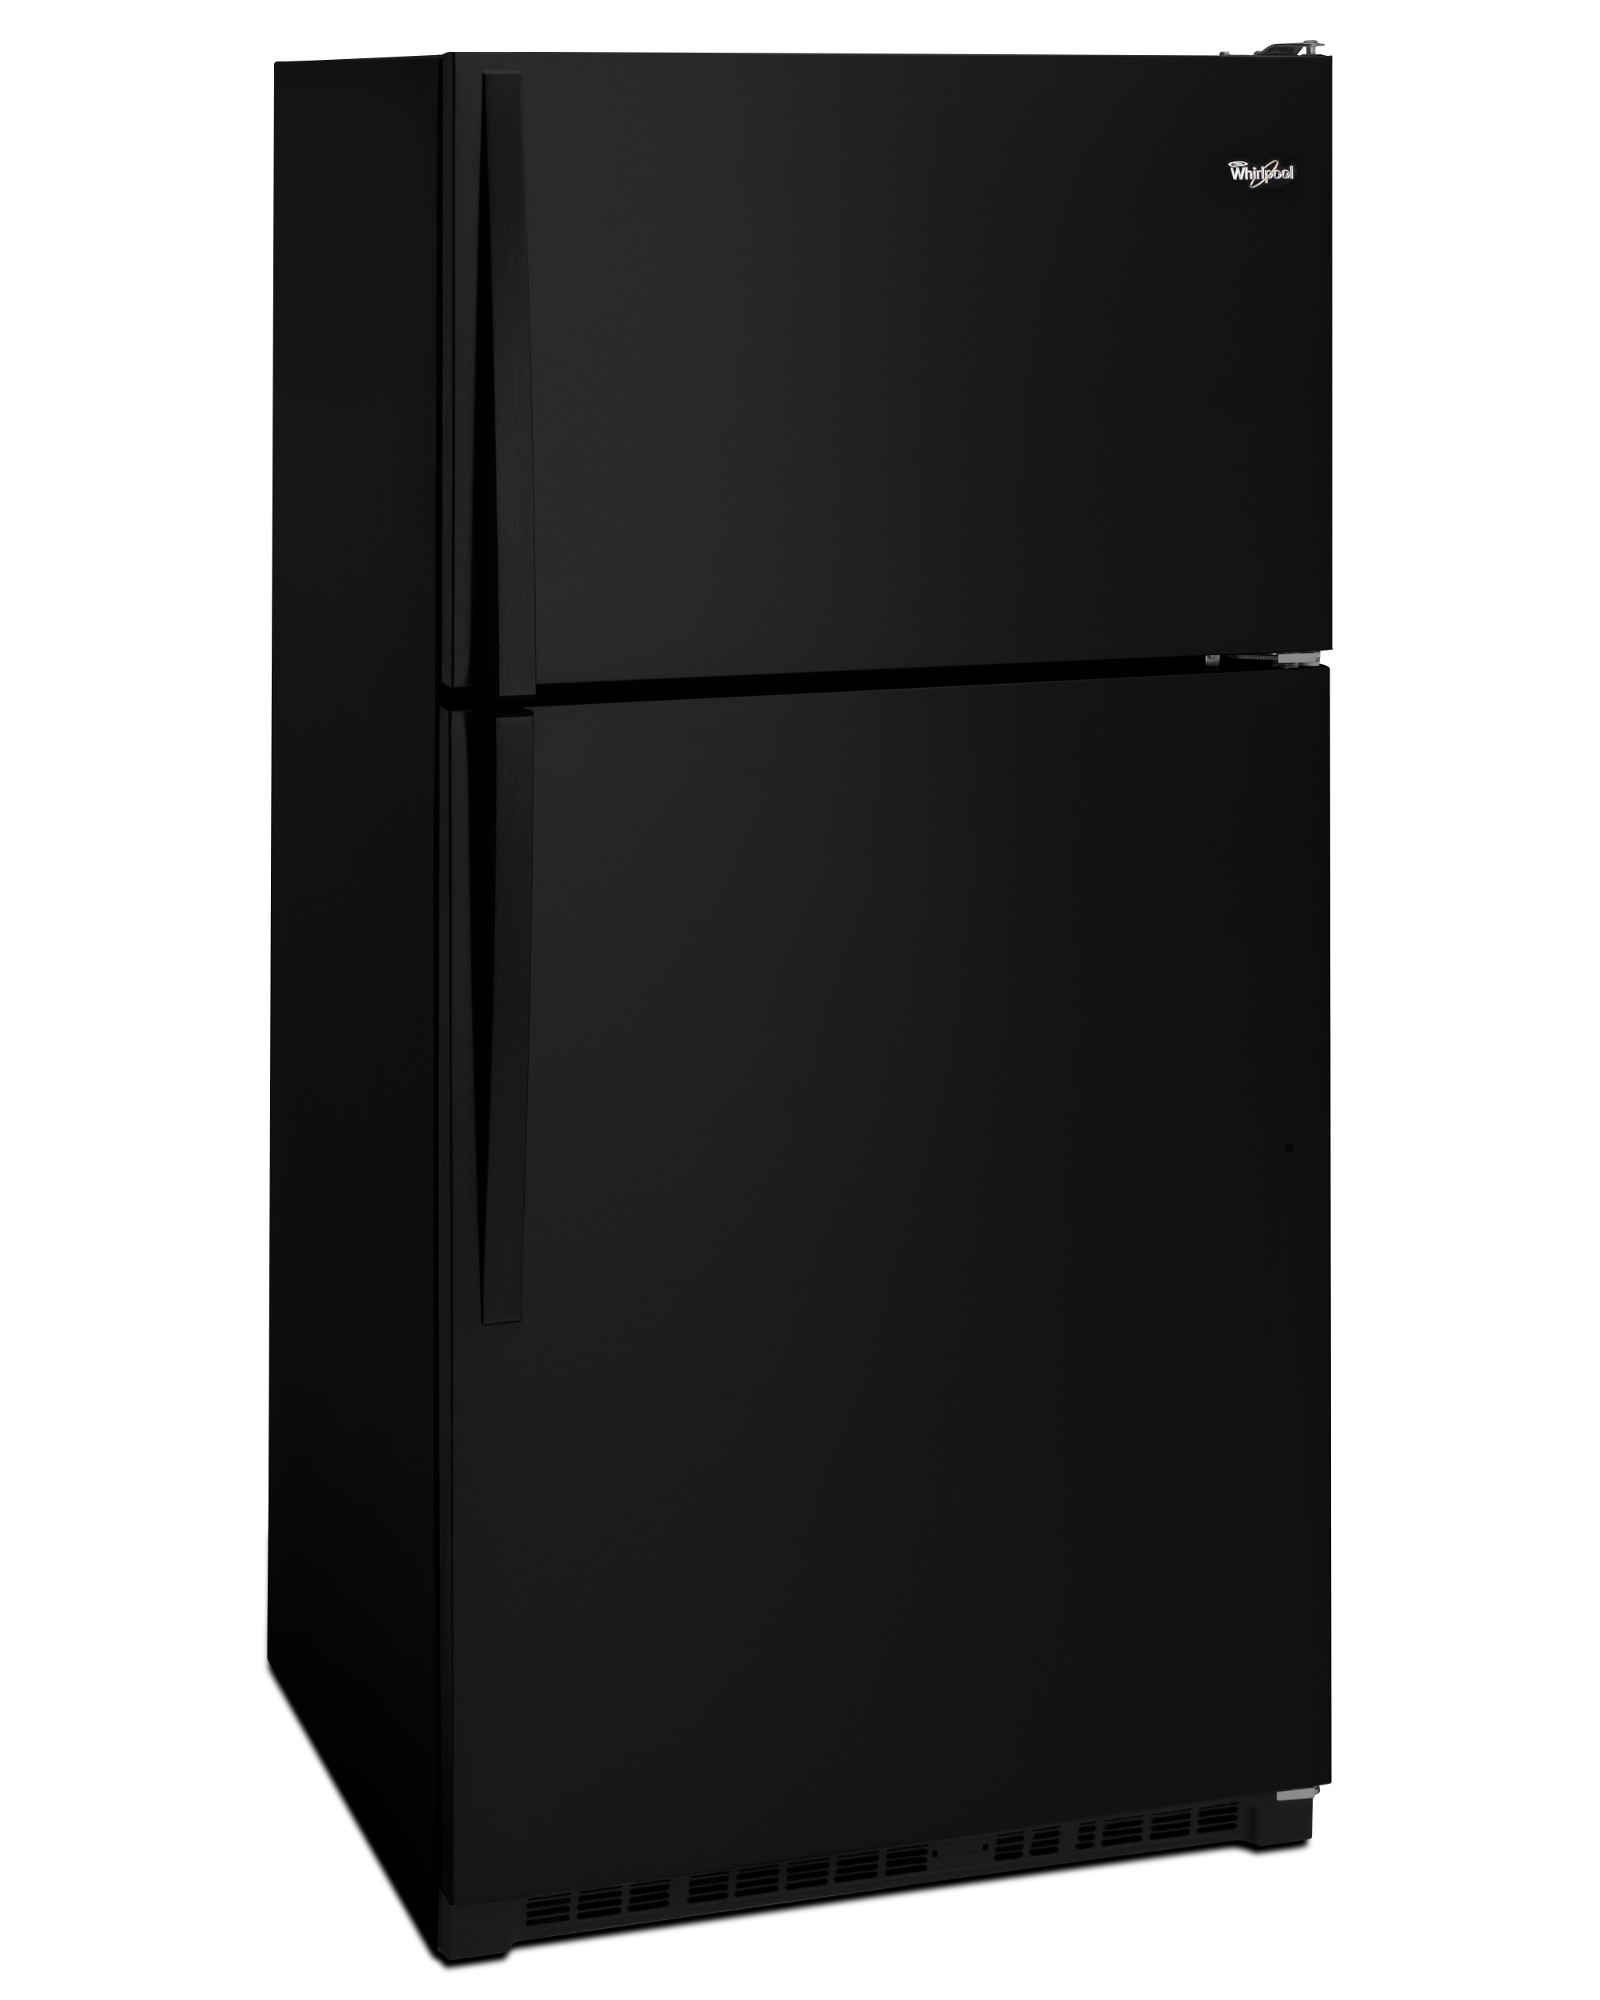 Whirlpool WRT311FZDB 20.5 cu. ft. Top Freezer Refrigerator - Black